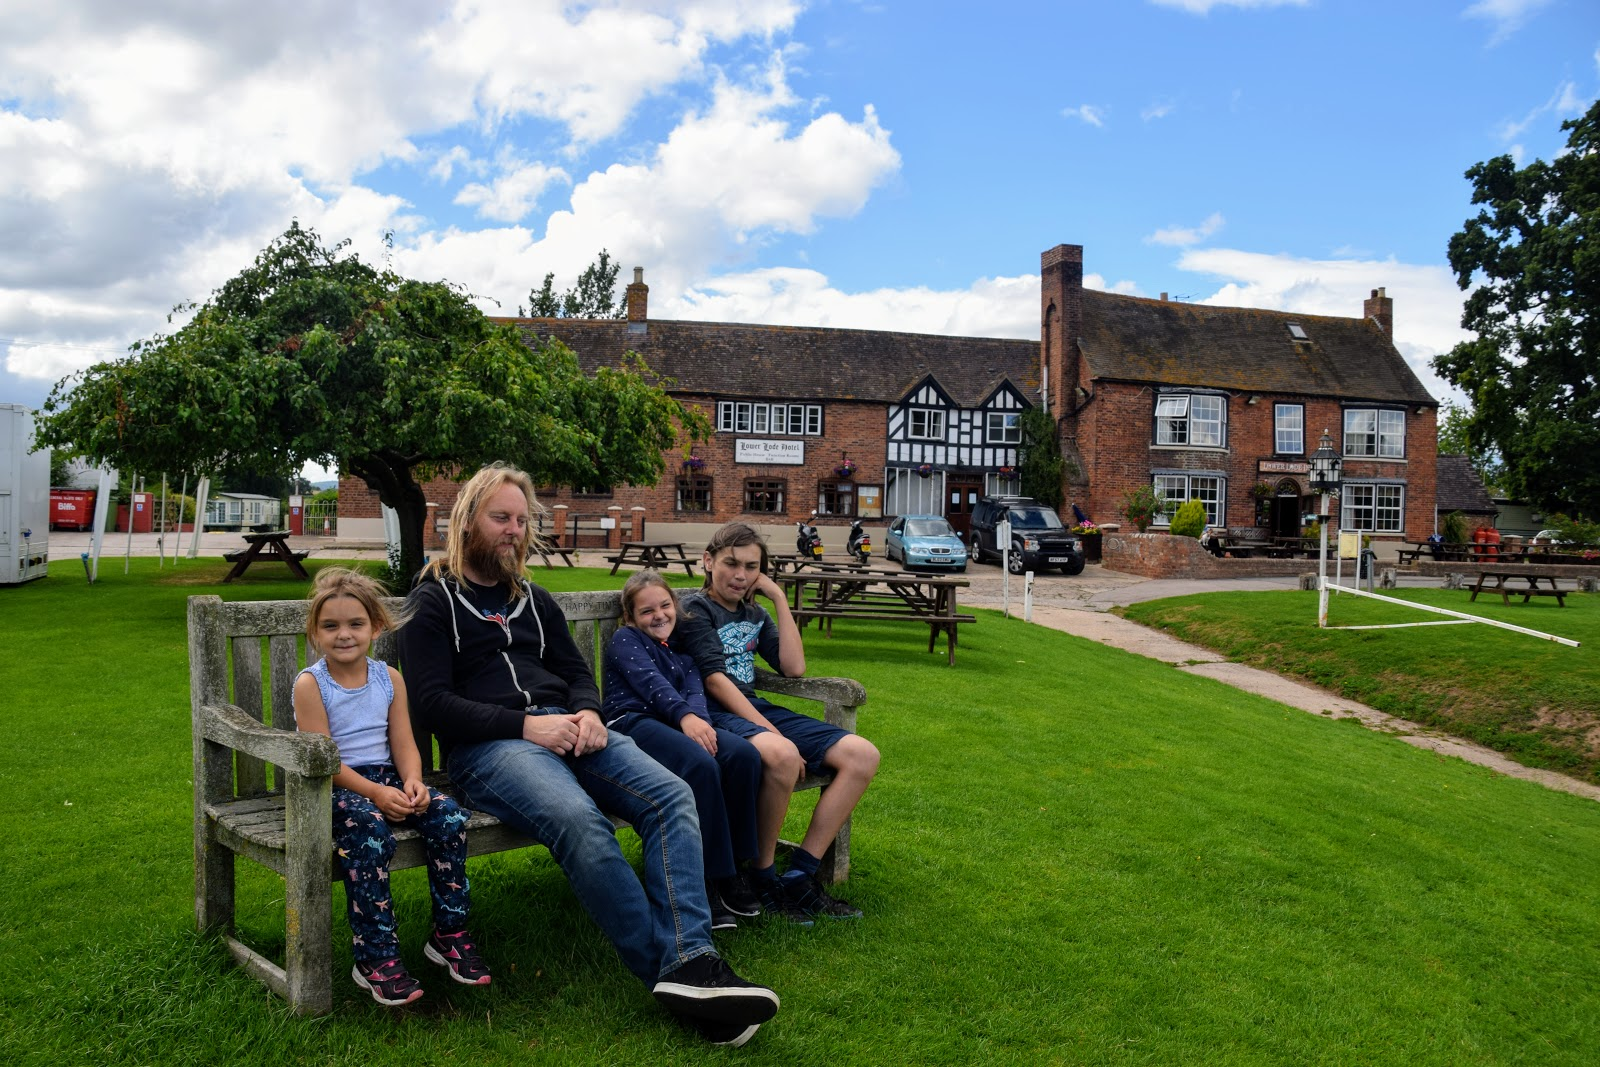 , A Surprise Stay at the Lower Lode Inn, Tewkesbury